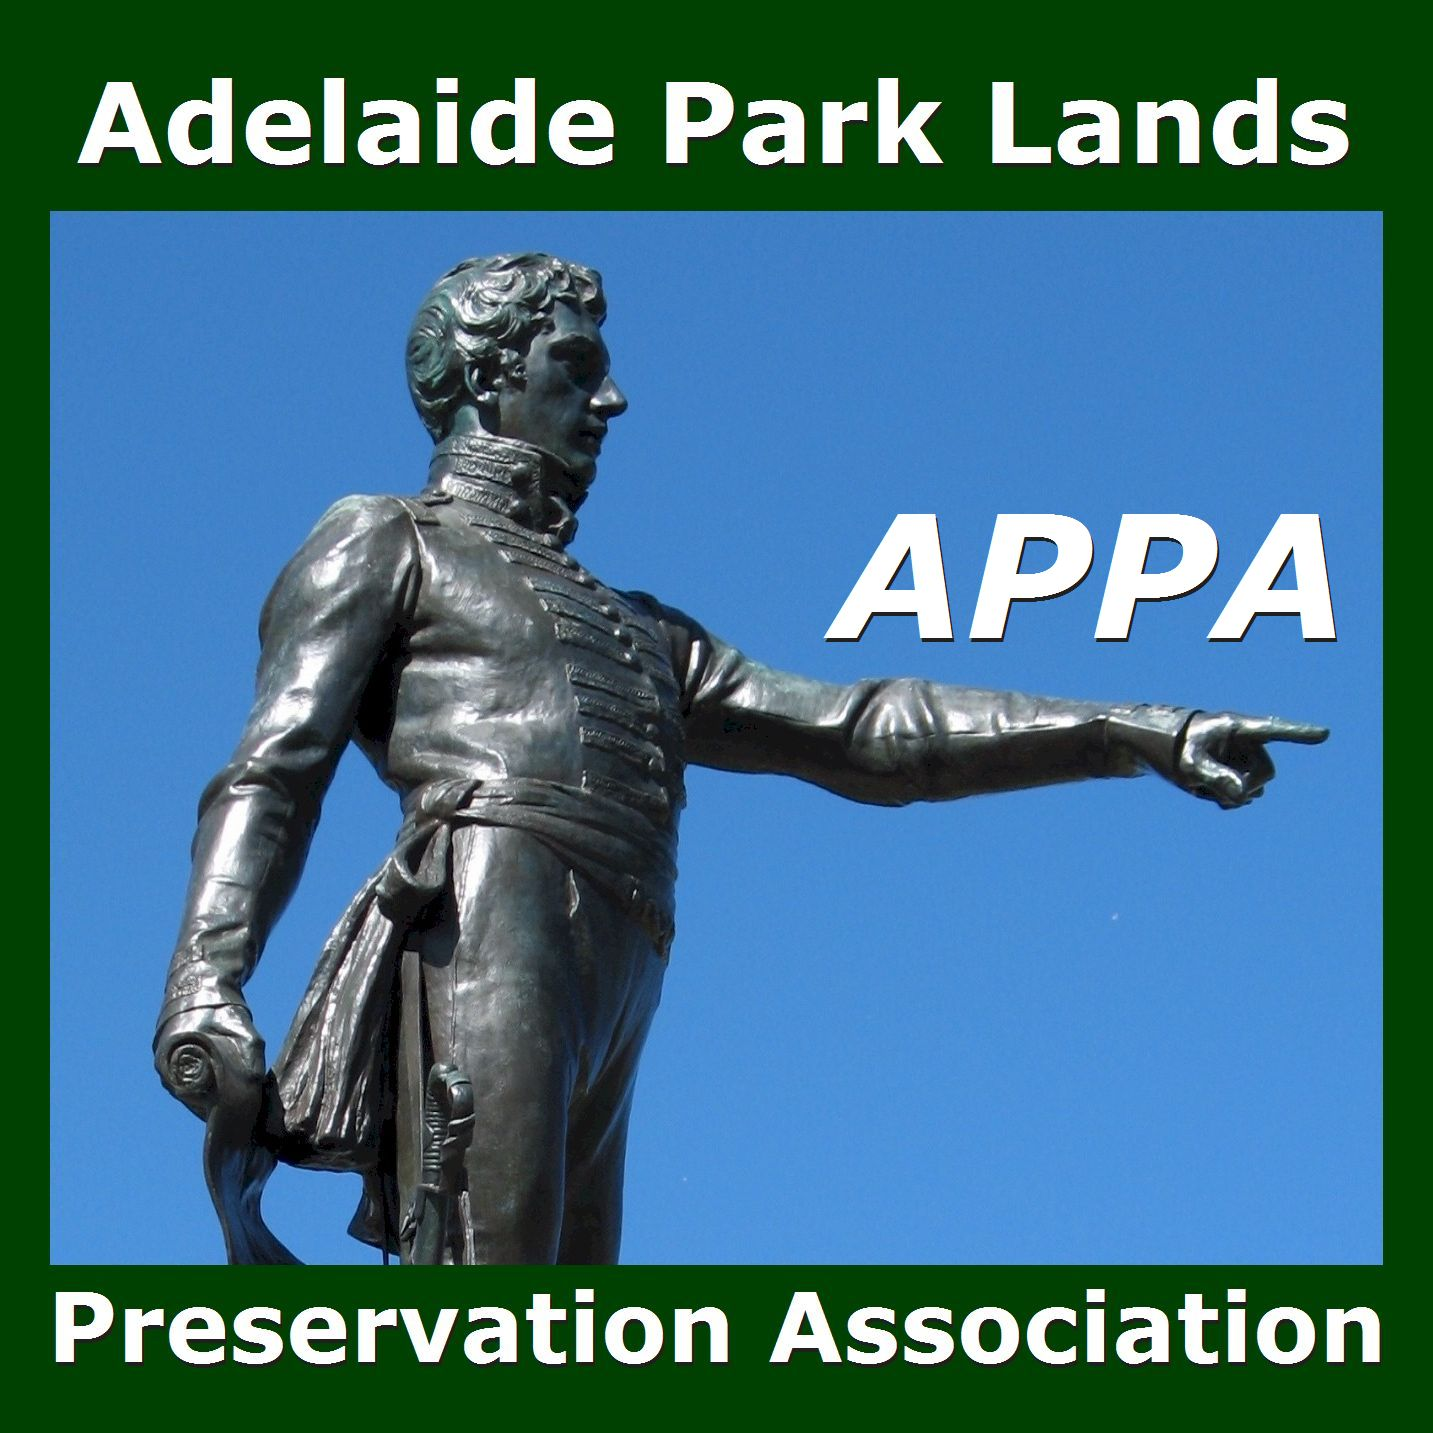 Adelaide Park Lands Preservation Association